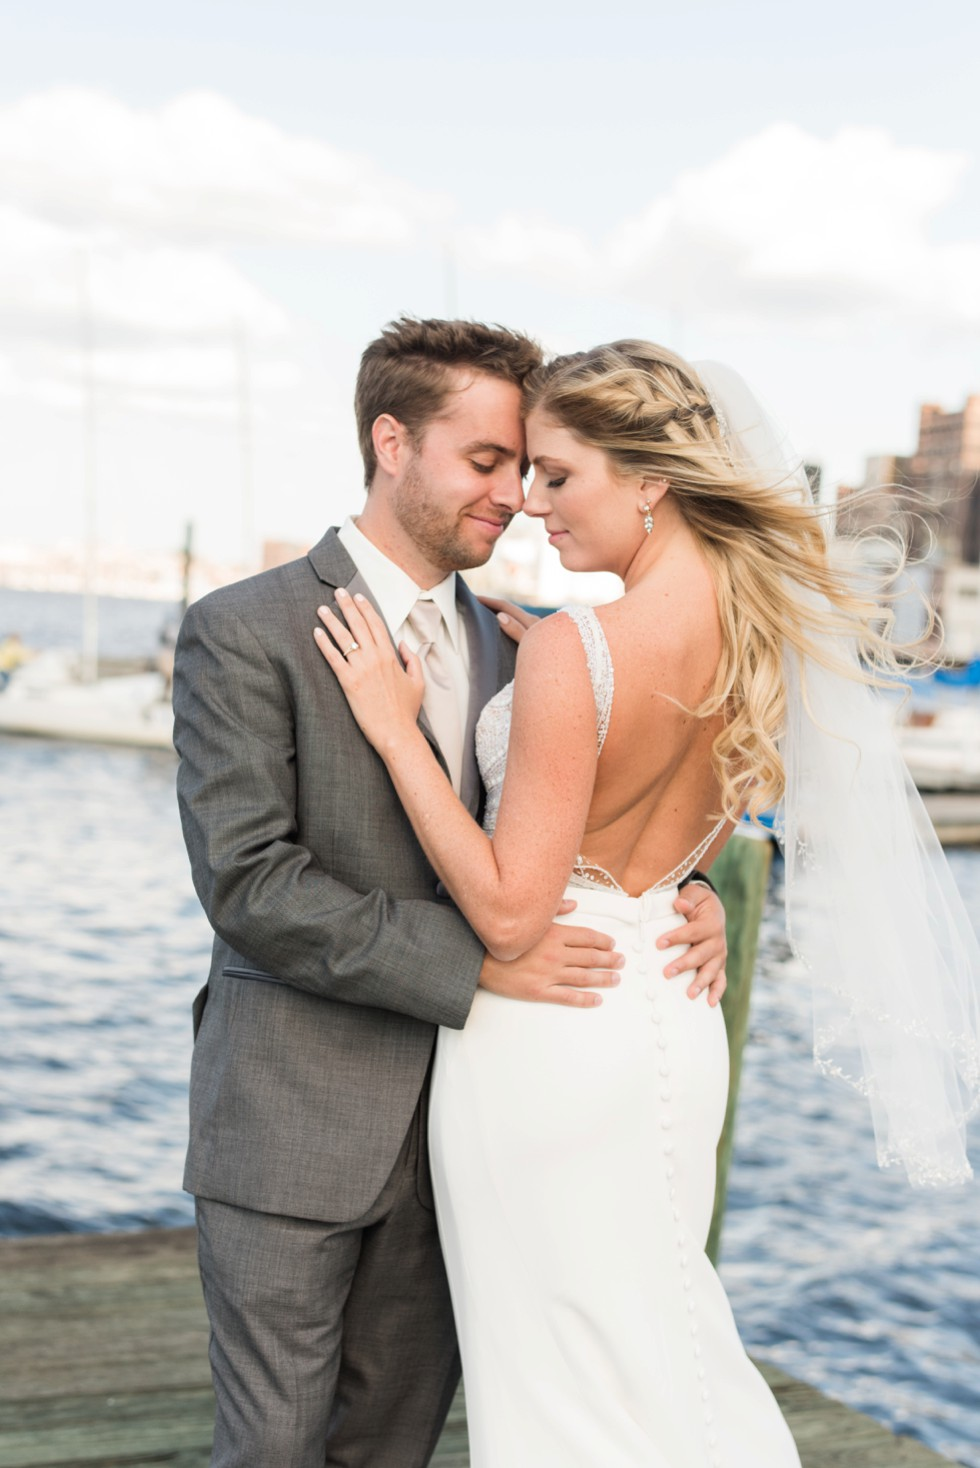 Baltimore Museum of Industry wedding photos with a sailboat on the baltimore harbor